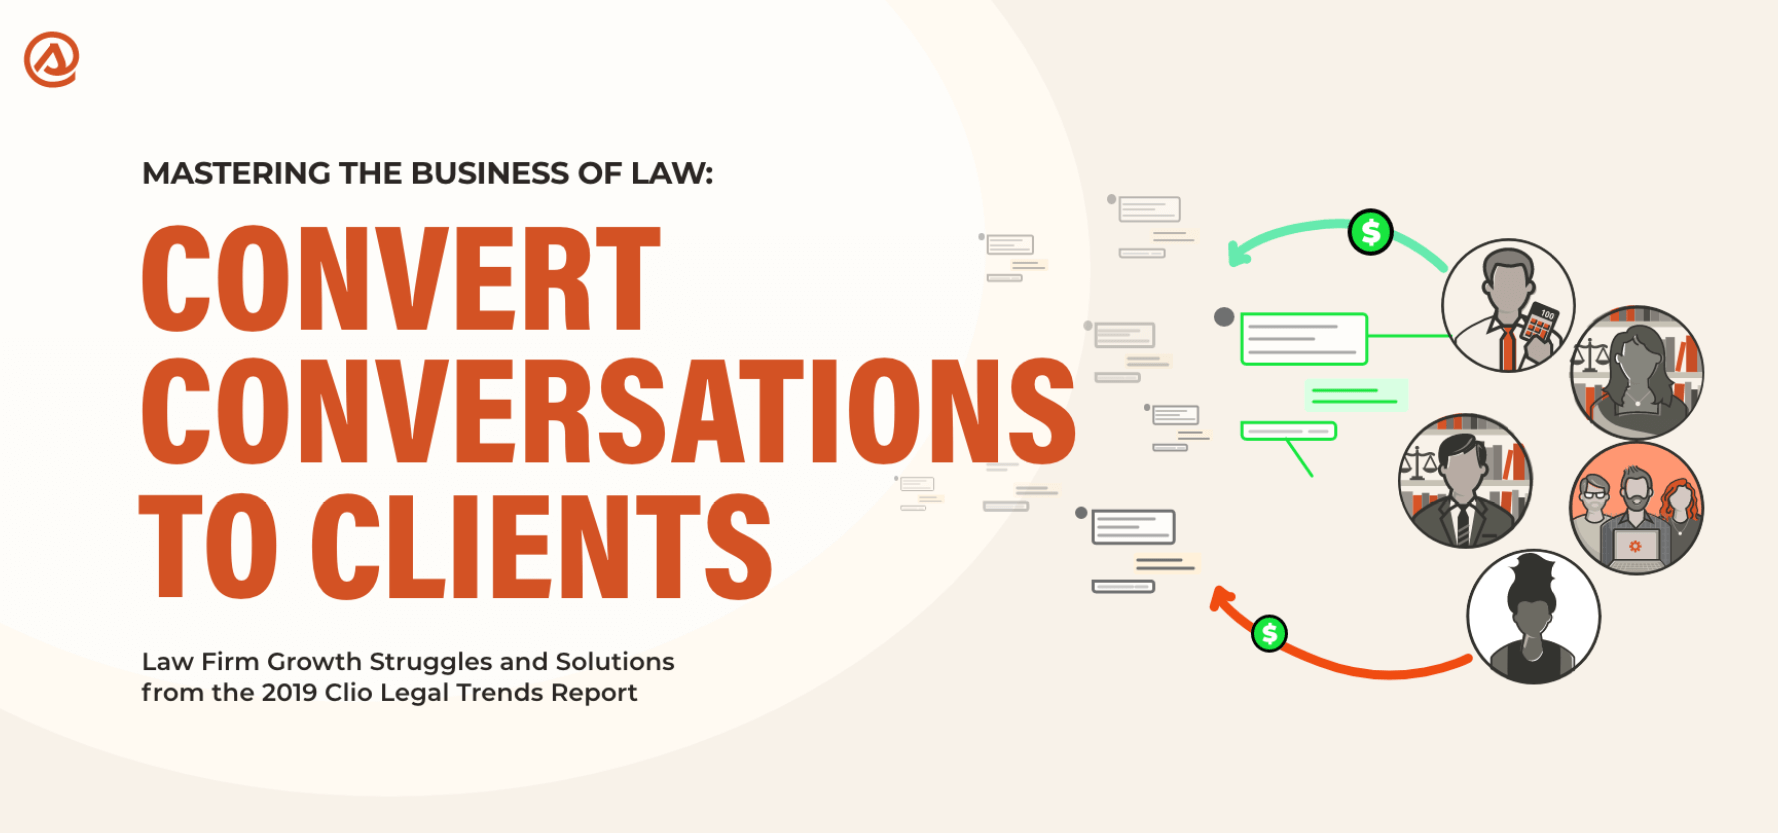 [INFOGRAPHIC] Convert Conversations to Clients: Solutions to Law Firm Growth Struggles, from the 2019 Clio Legal Trends Report